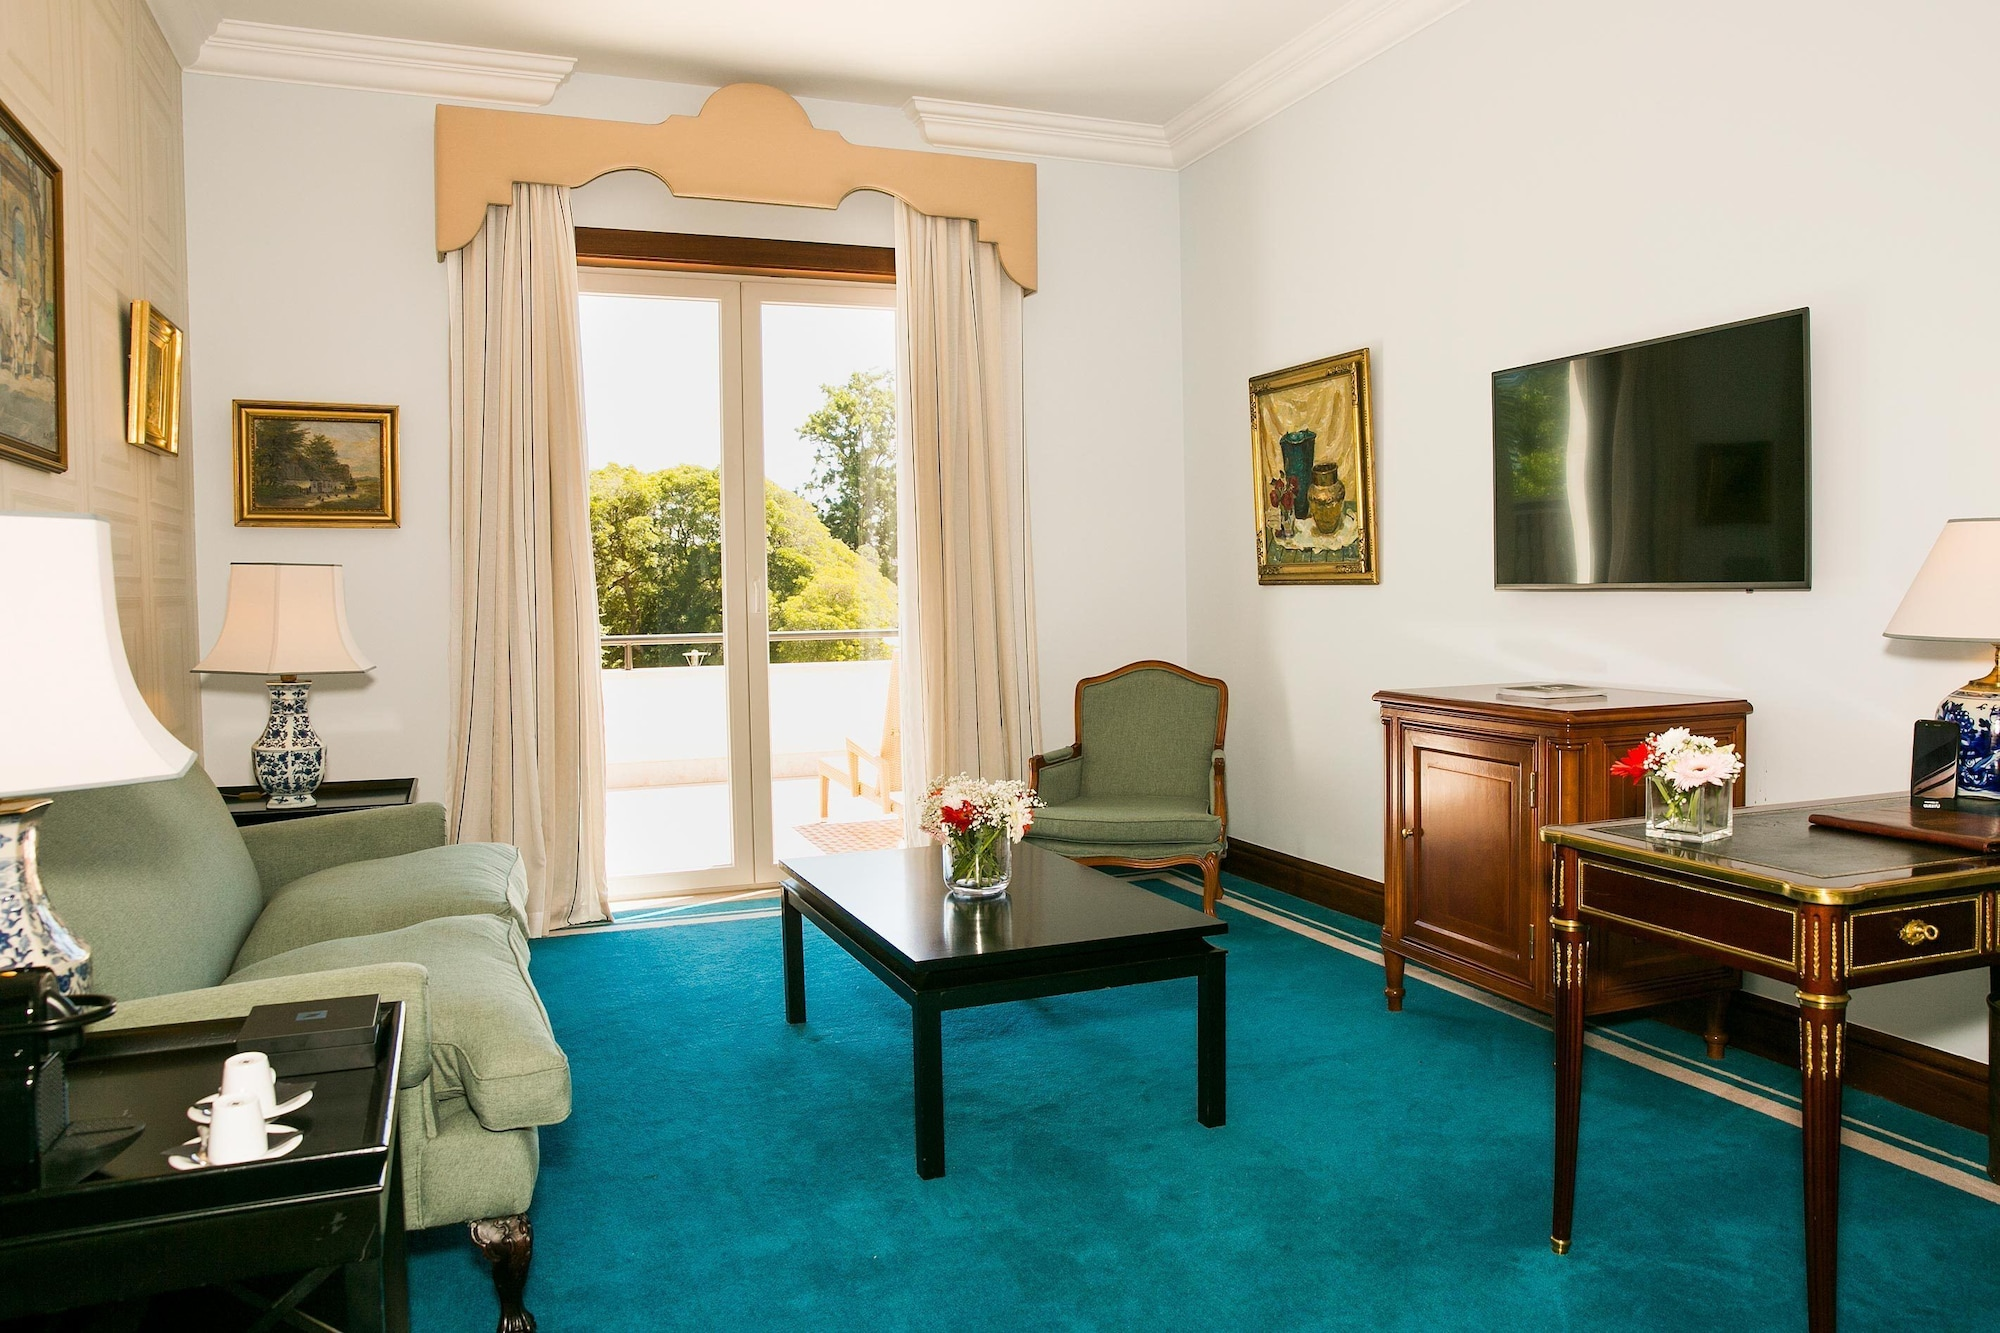 Pestana Palace Lisboa - Hotel & National Monument, Lisboa